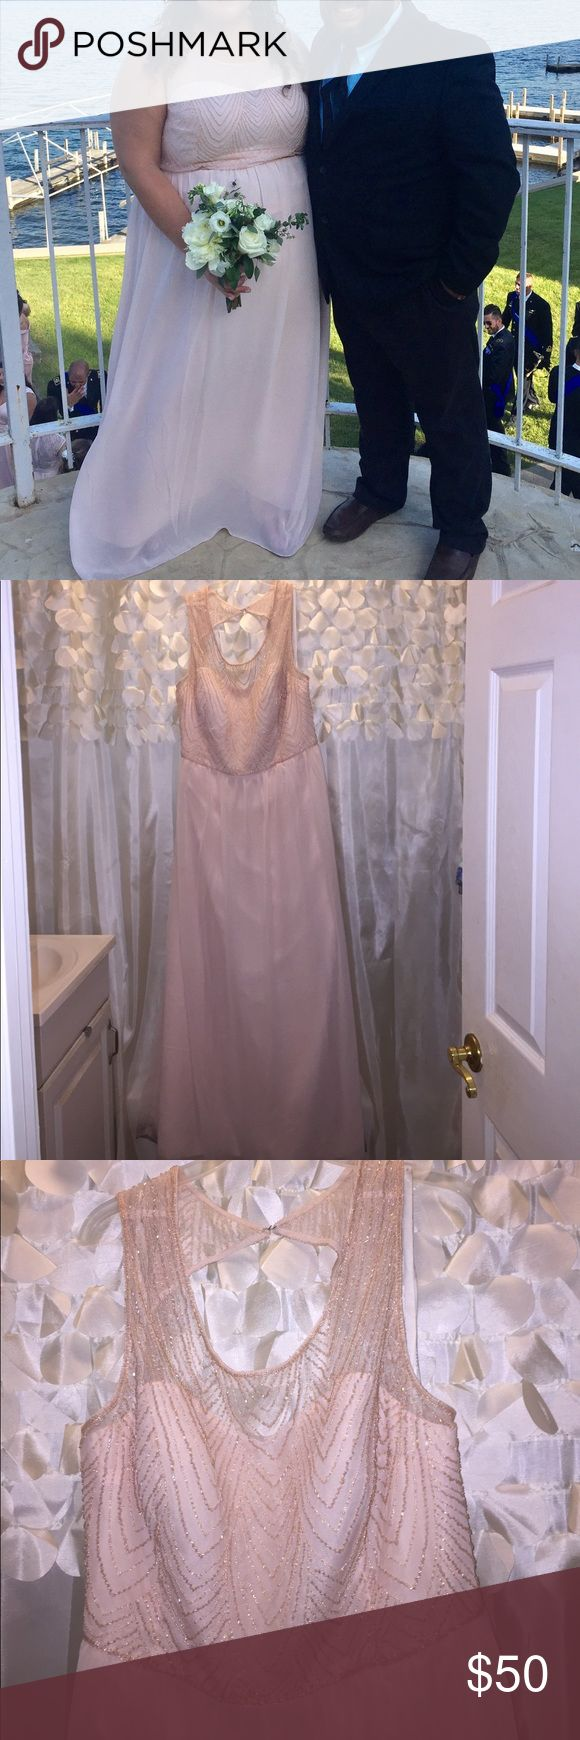 Gorgeous Blush Bridesmaids Dress Loved this dress that I wore in my best friend's wedding! It's a size 22 but honestly I'm generally an 18 so I think it rubs small. It has a pull on the front heading that I noticed the am of the wedding and it was fine, didn't show in pics. I also found a little pull in the back. This has not been altered and was just a bit long on me...I'm 5'6 and wore flats. This dress has not been cleaned. Make me an offer I can't refuse, this beauty needs a new home…